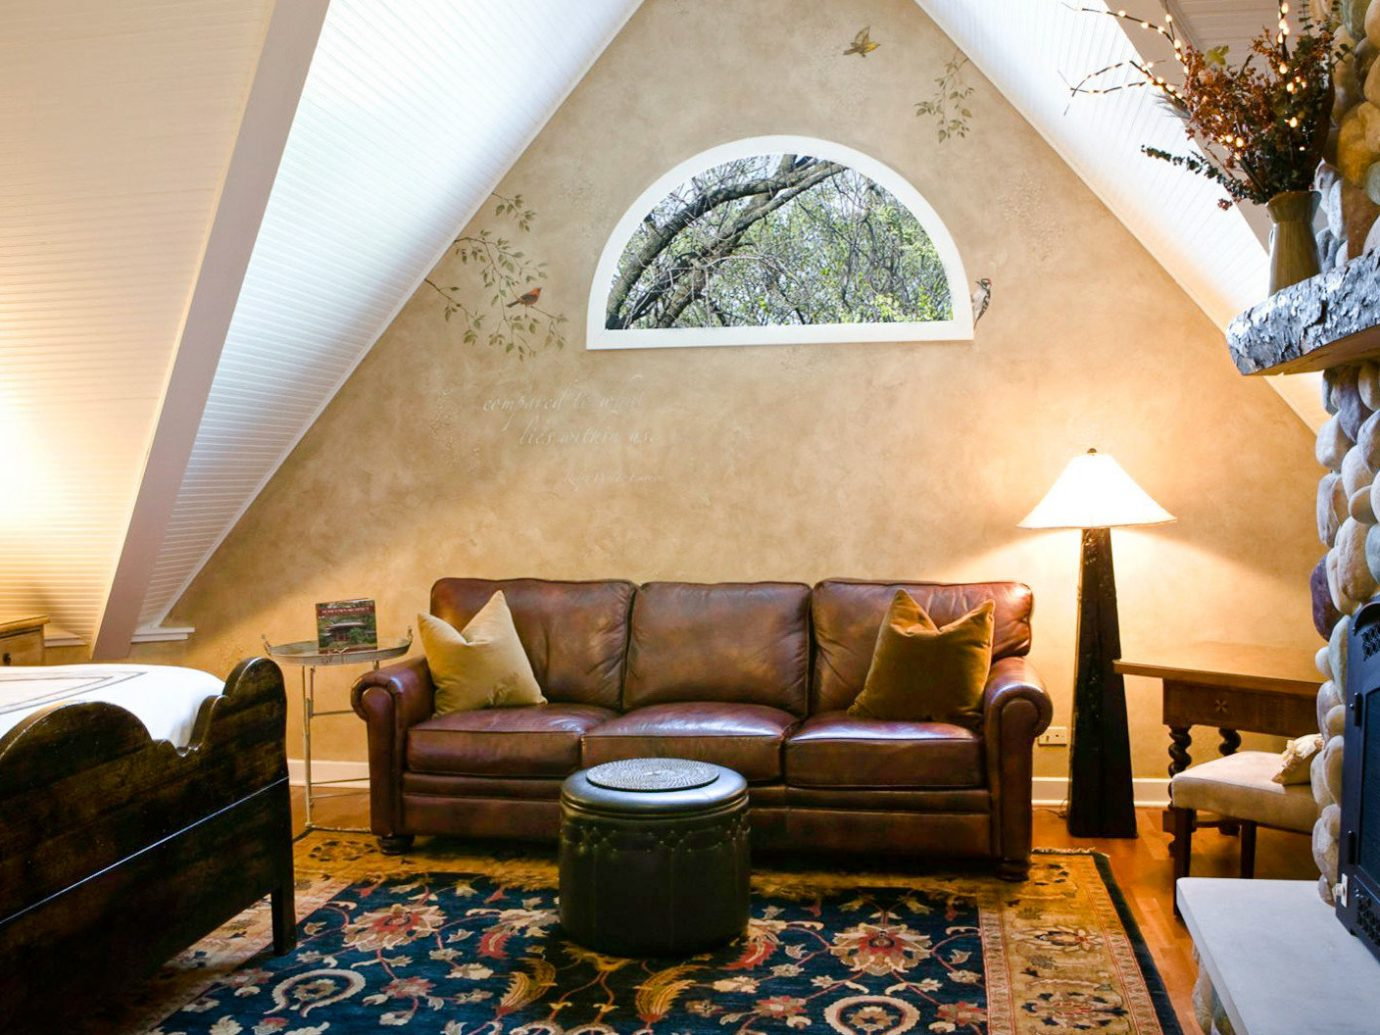 Boutique Hotels Hotels Romantic Getaways Romantic Hotels room indoor interior design living room Living home Suite ceiling estate real estate Lobby window decorated furniture stone